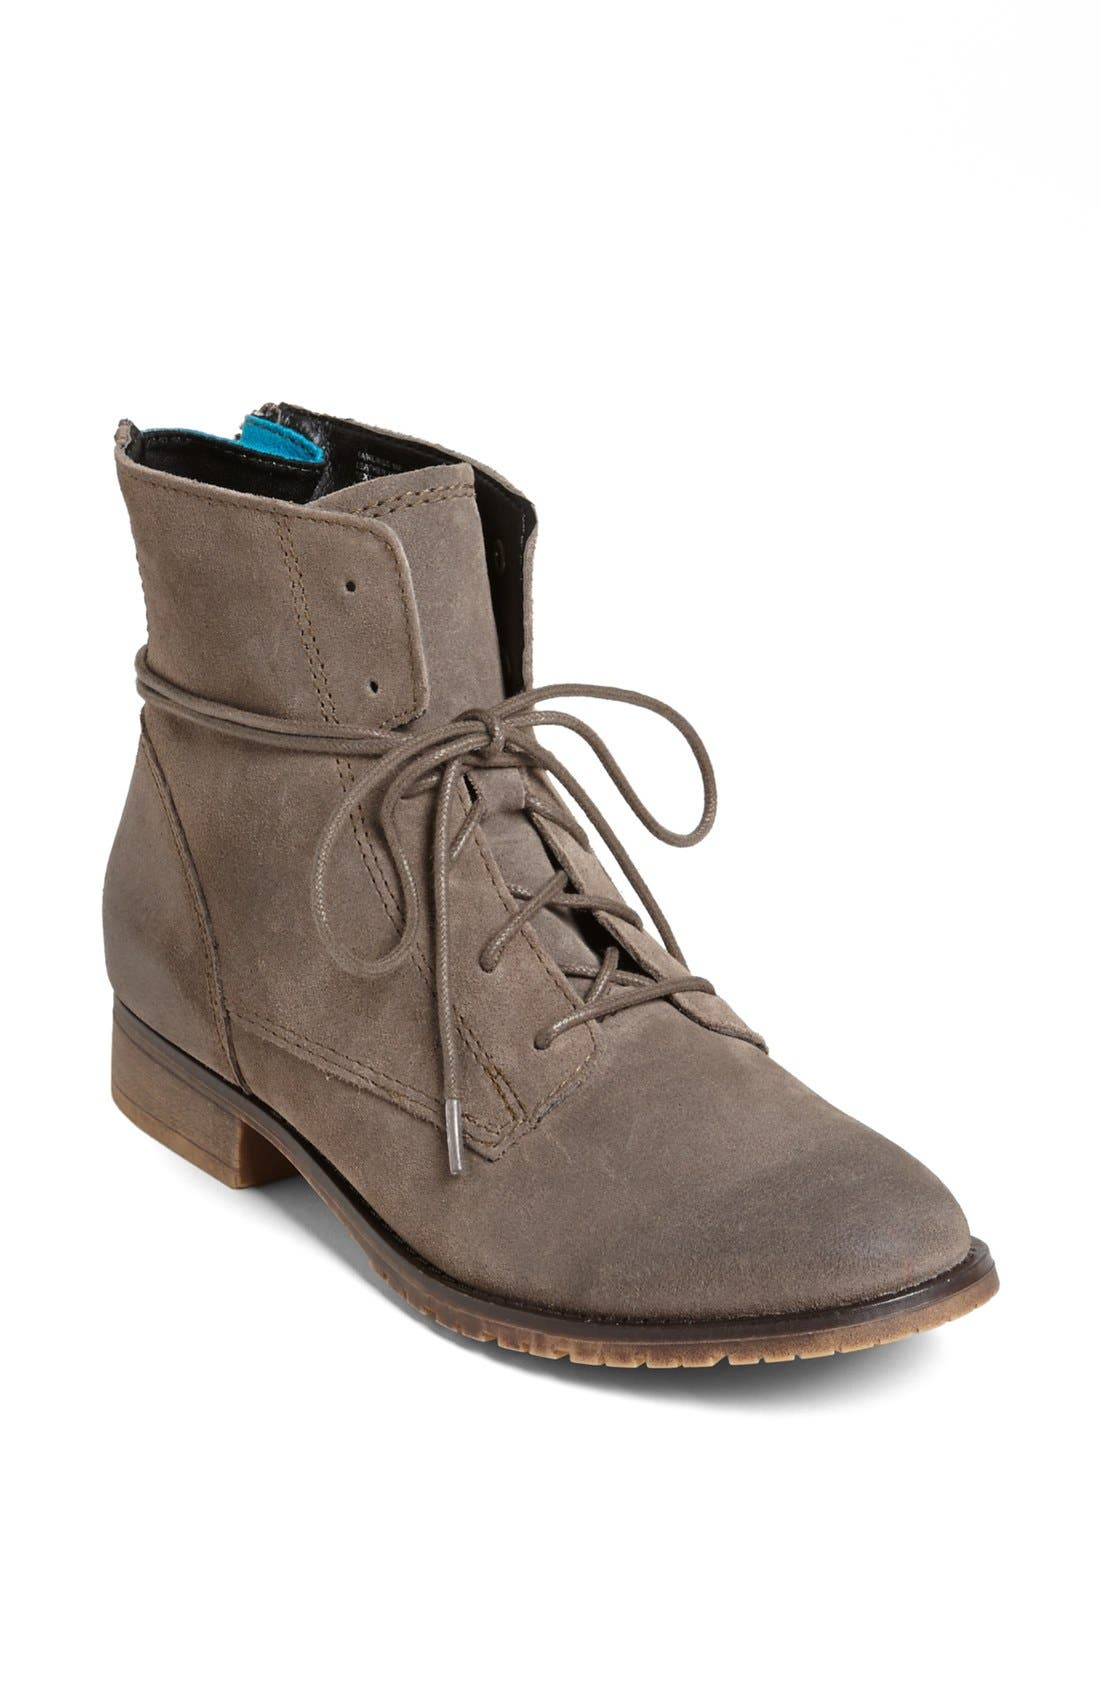 Main Image - Steve Madden 'Rawlings' Bootie